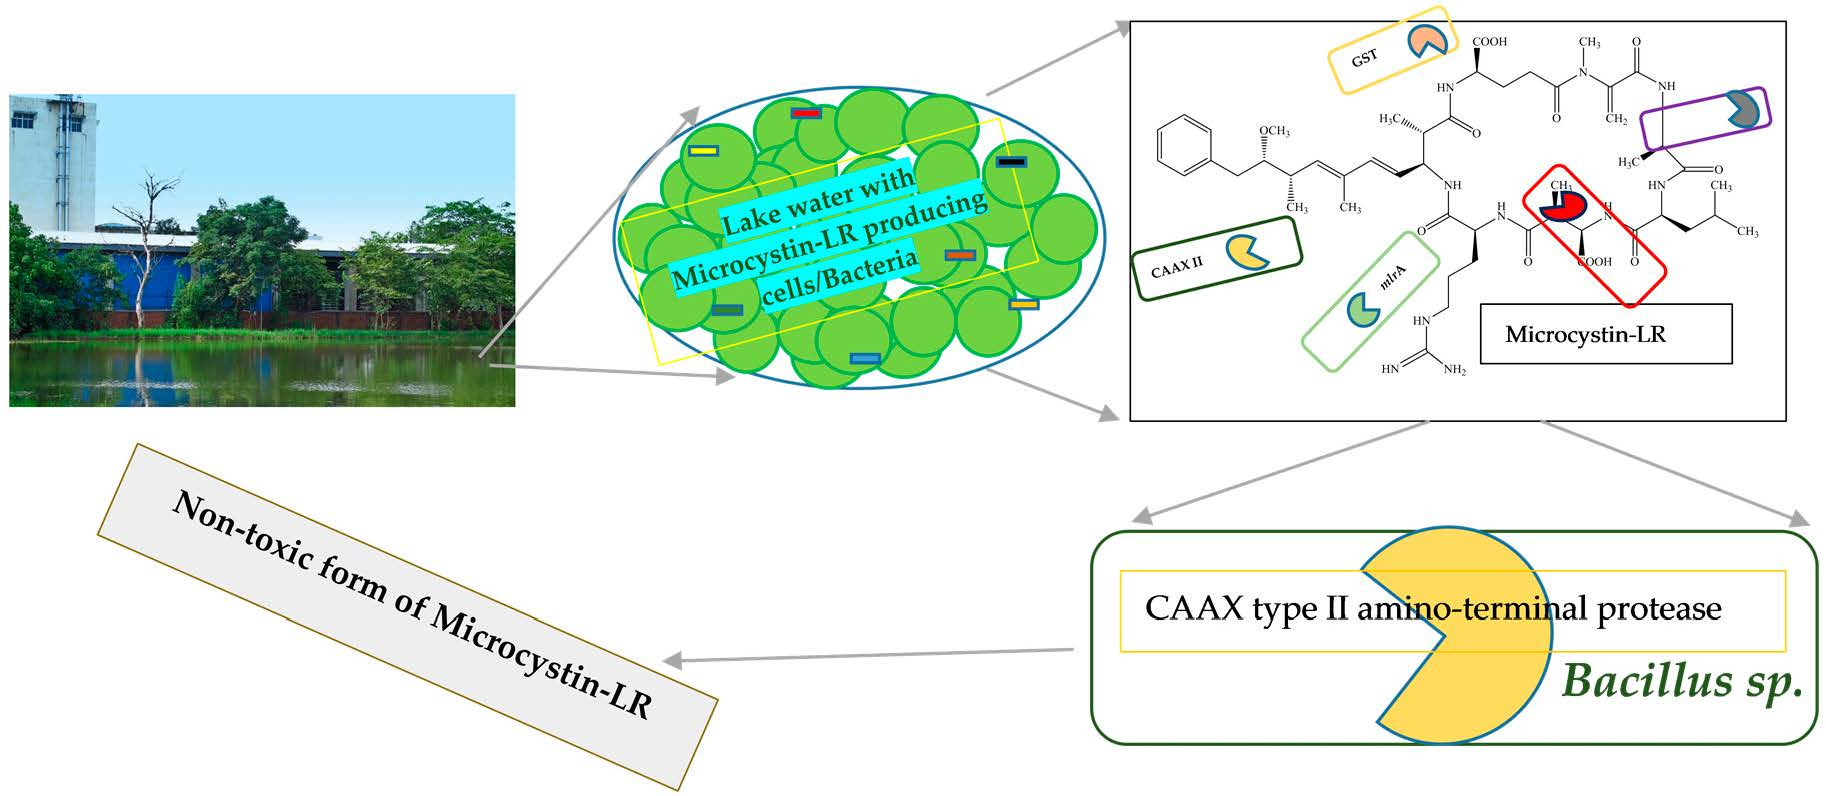 Water free full text microcystin lr biodegradation by bacillus graphical abstract ccuart Gallery